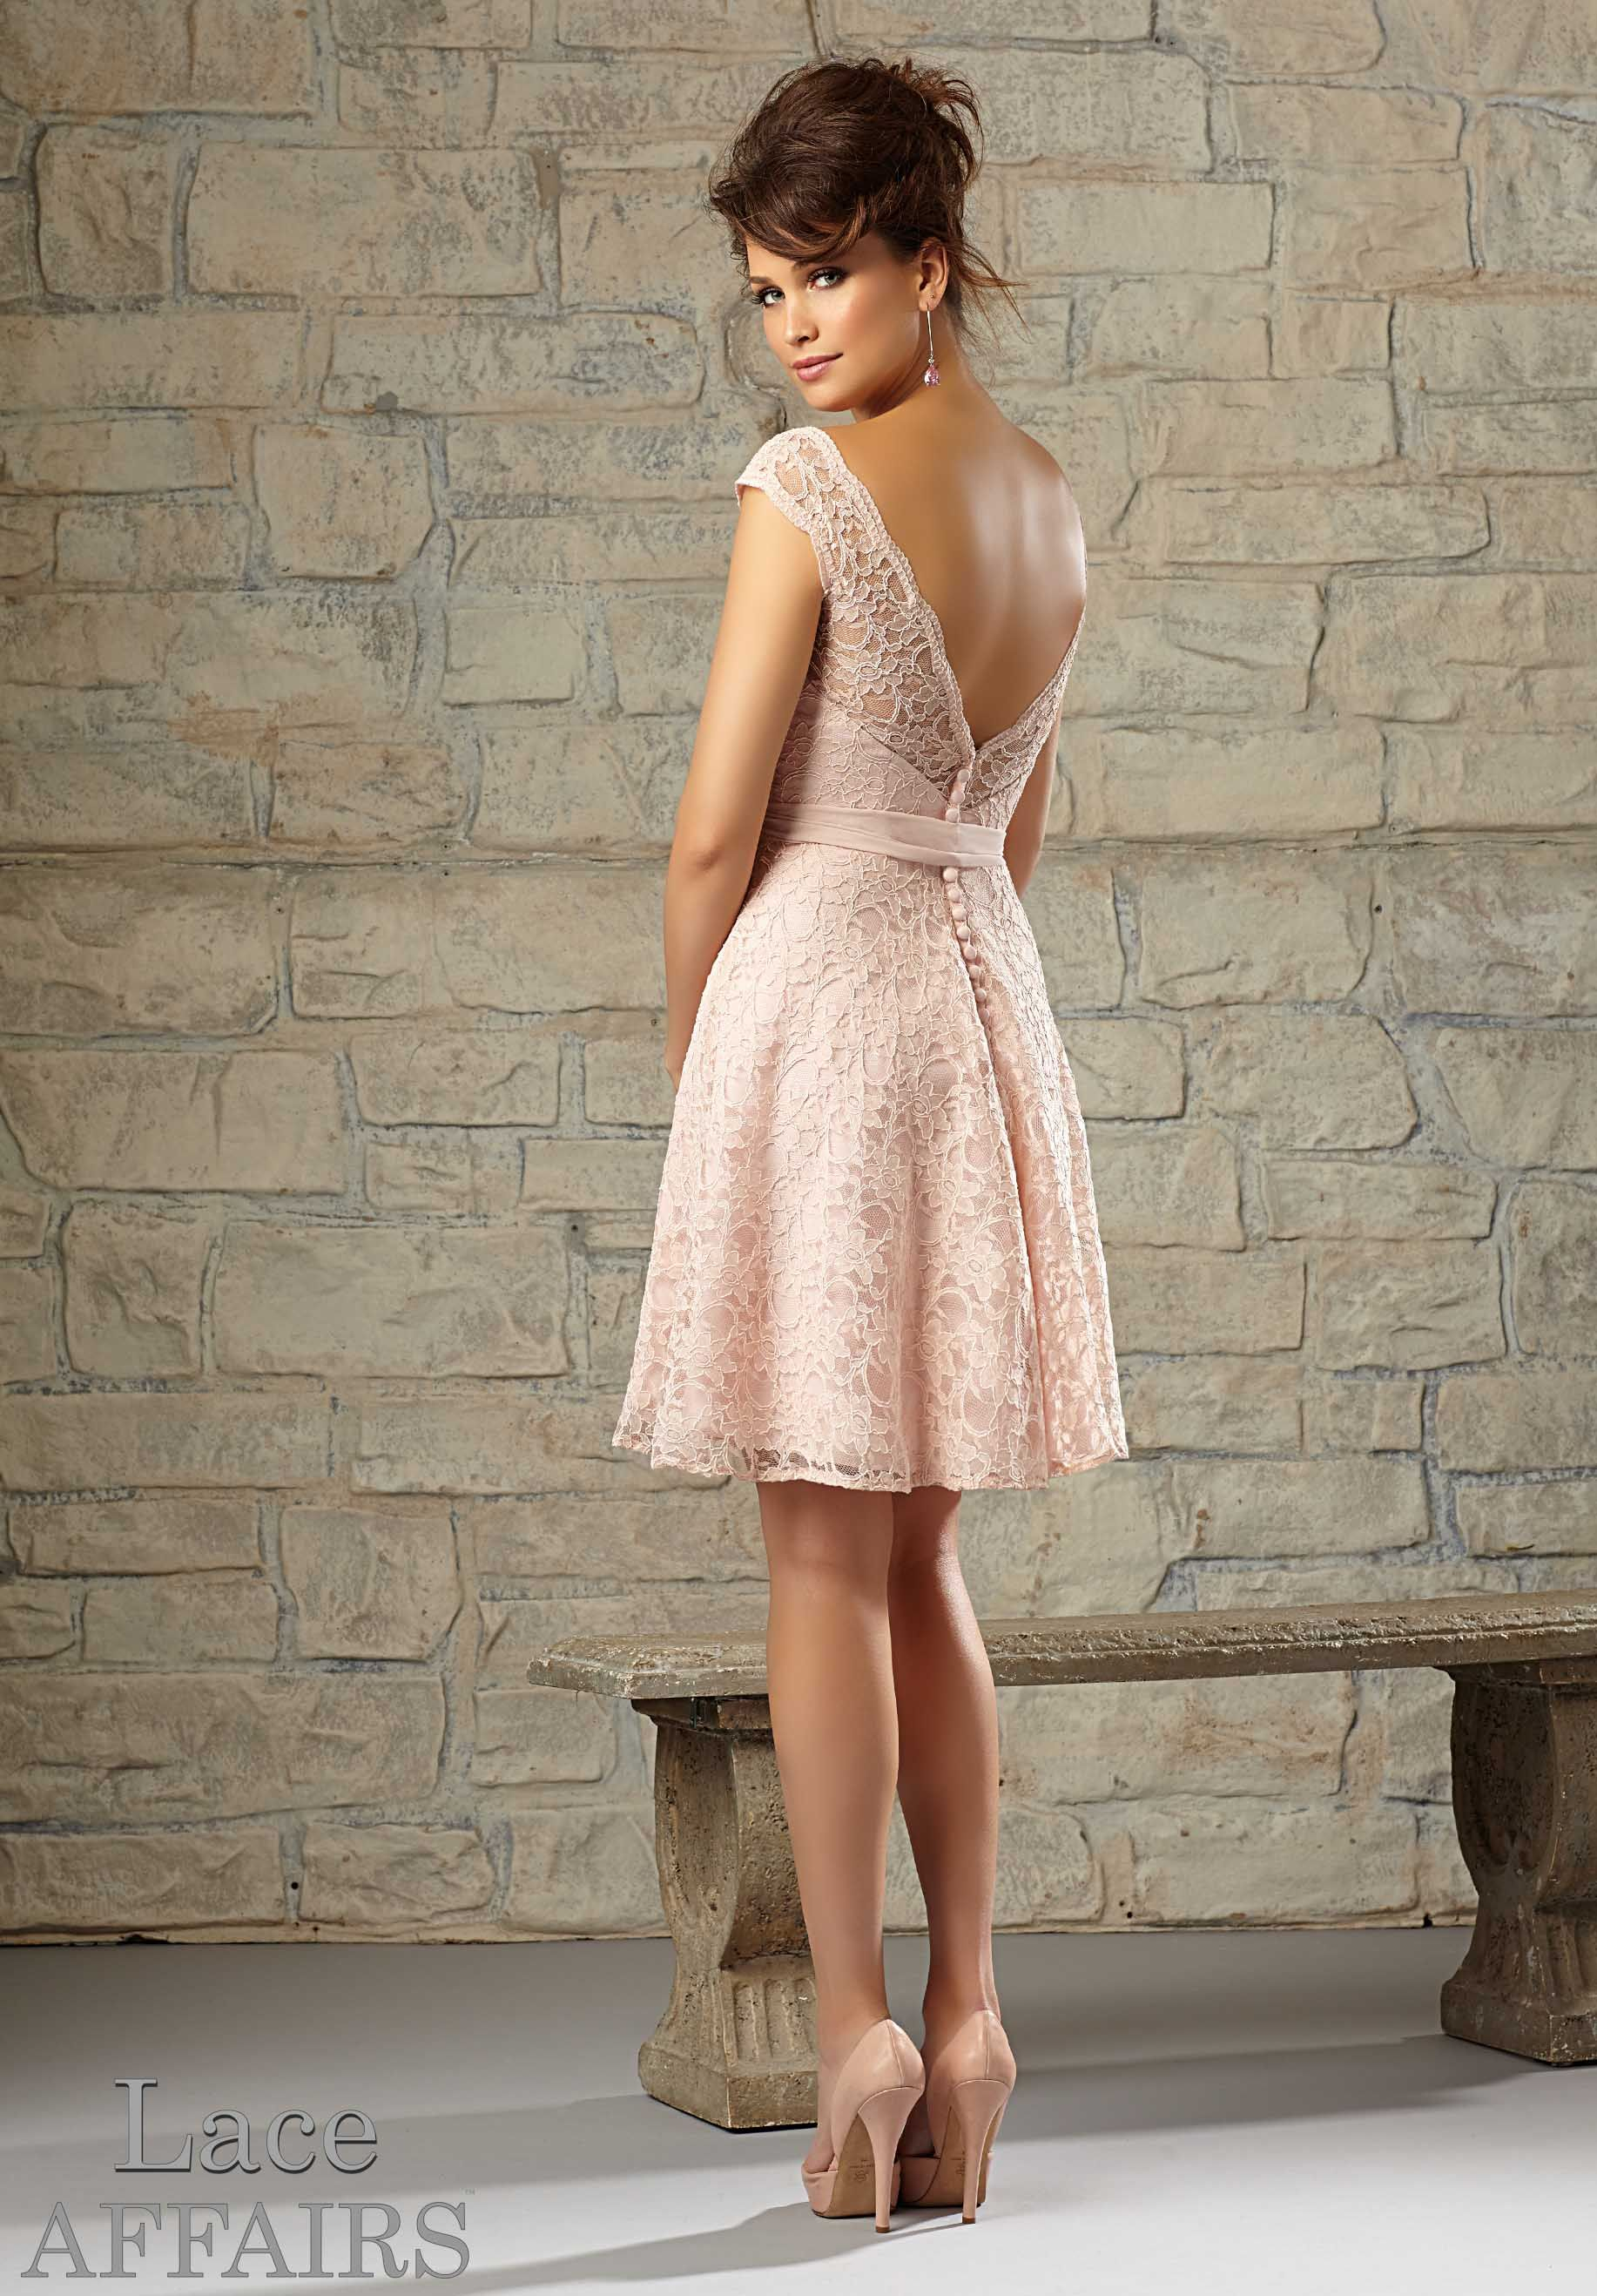 Dress Mori Lee LACE AFFAIRS SPRING Collection Lace